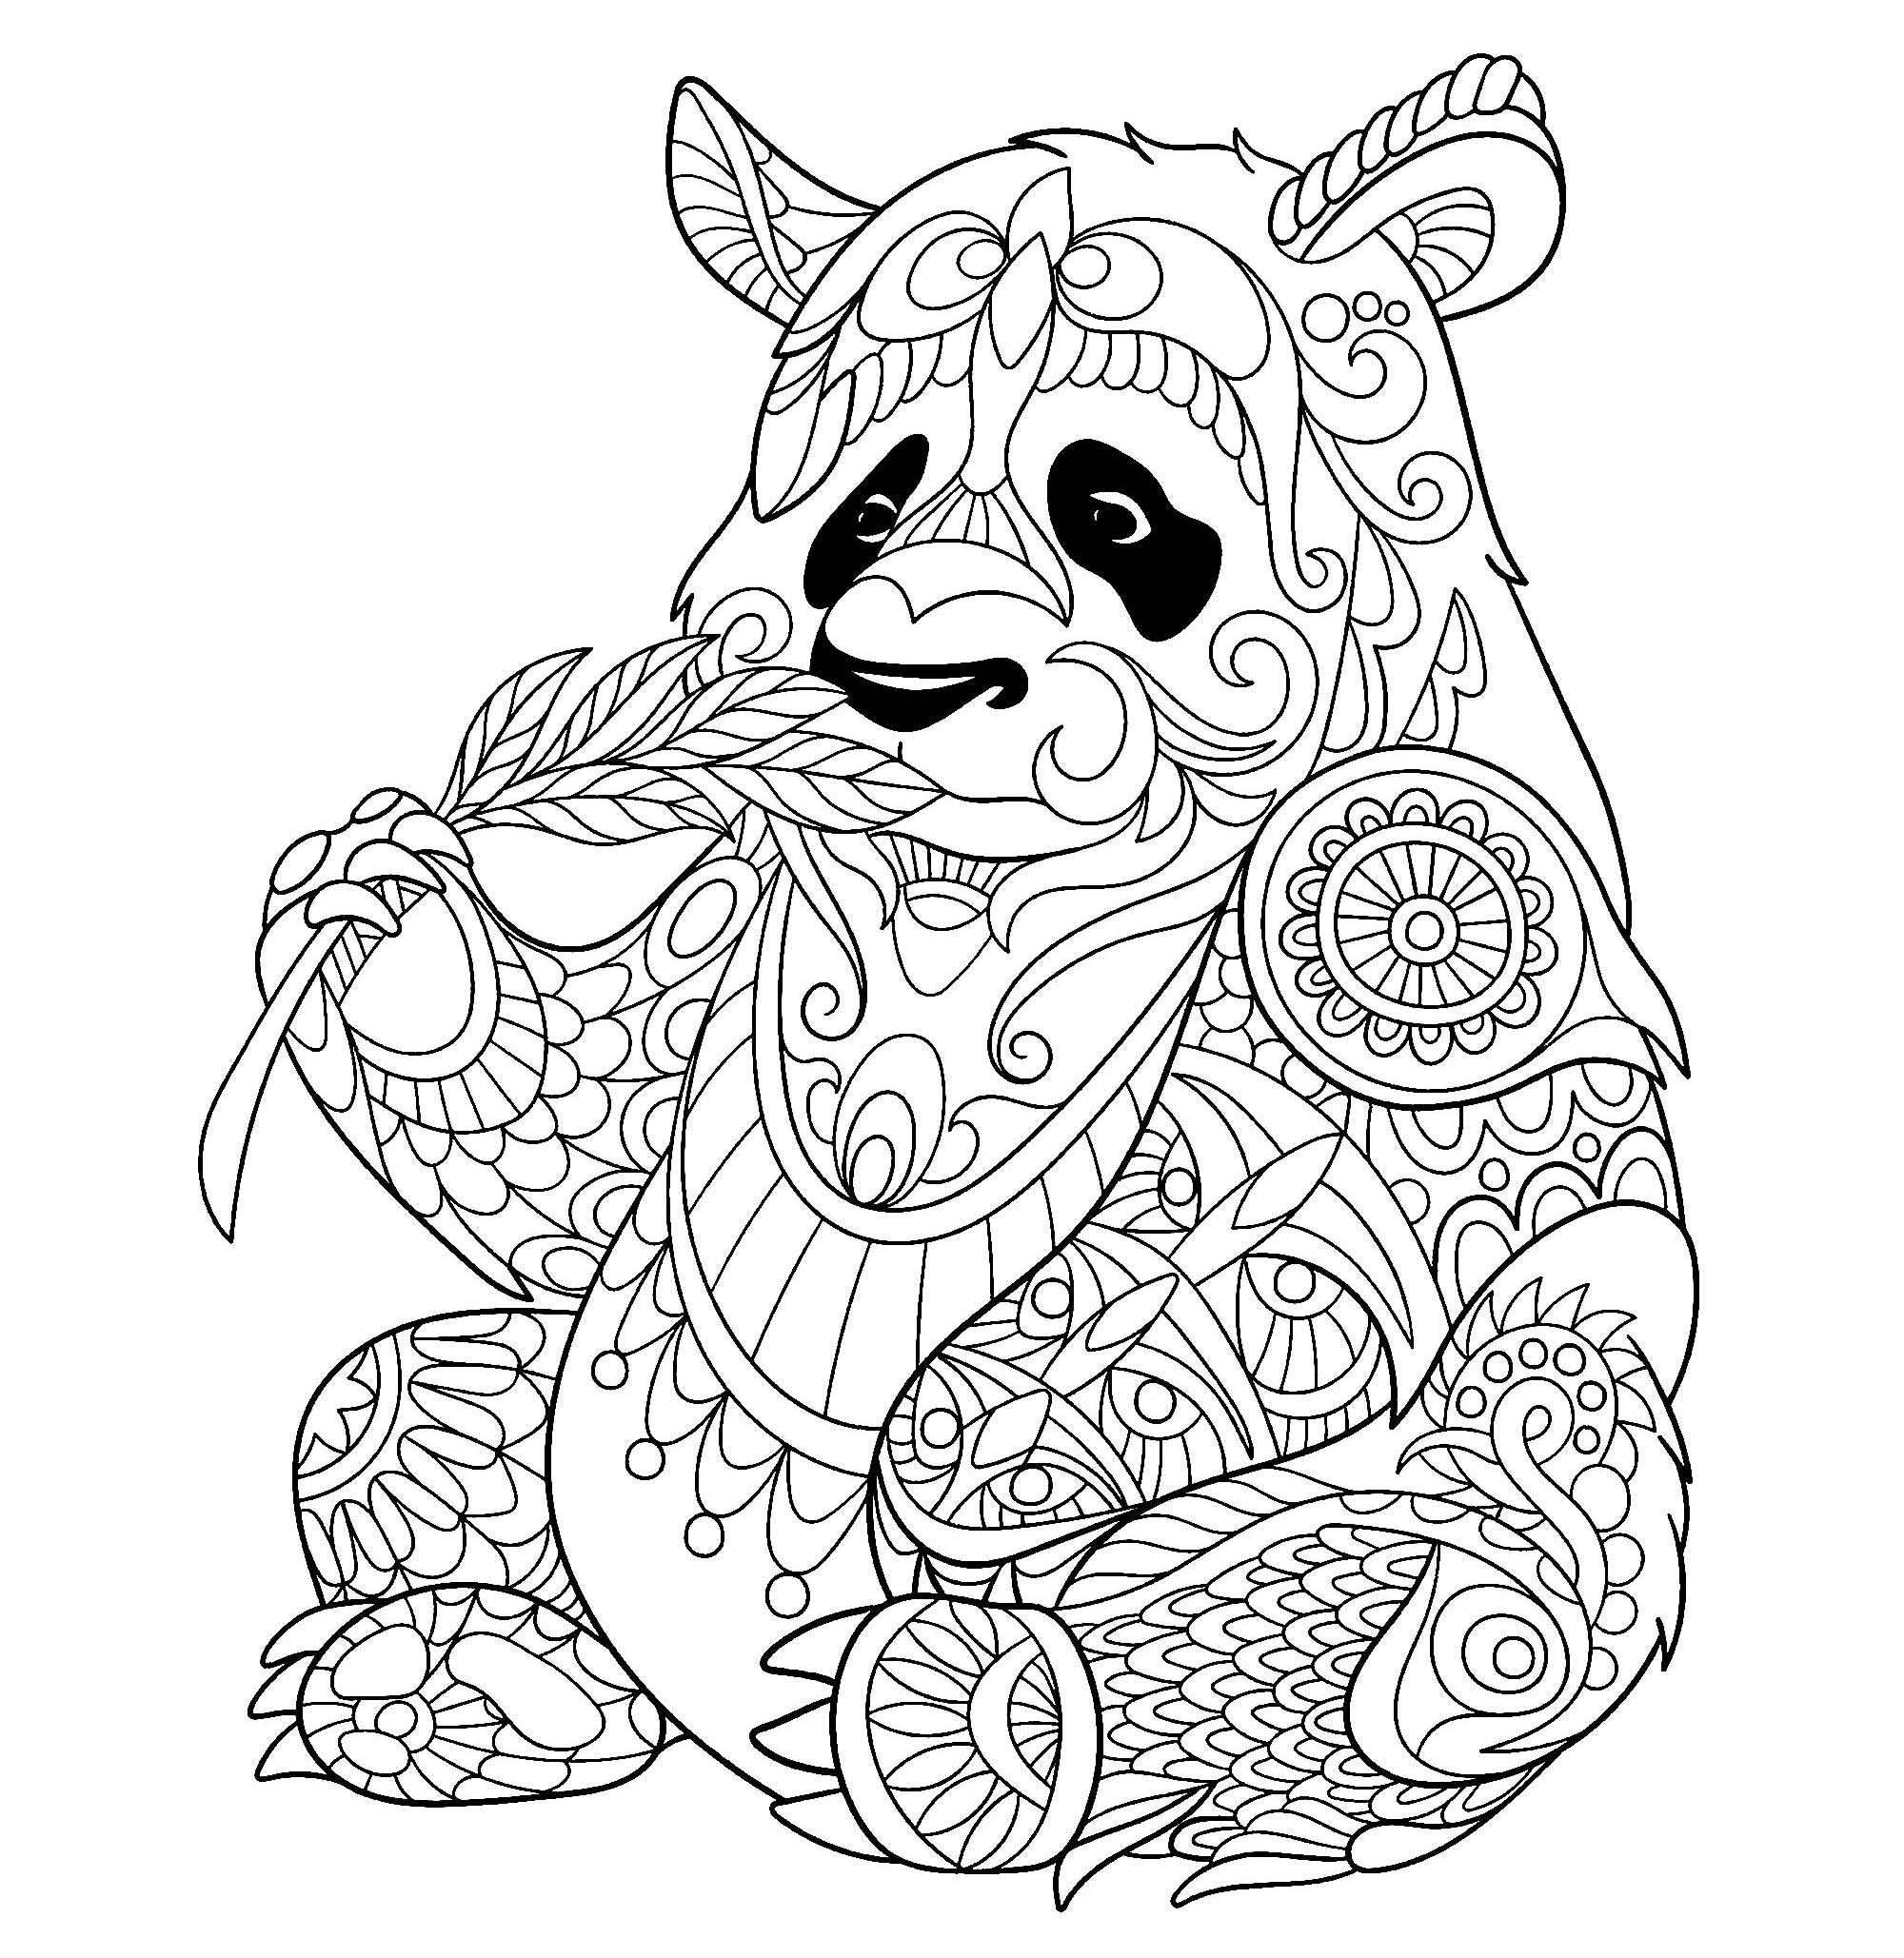 kids coloring in pages - photo#26